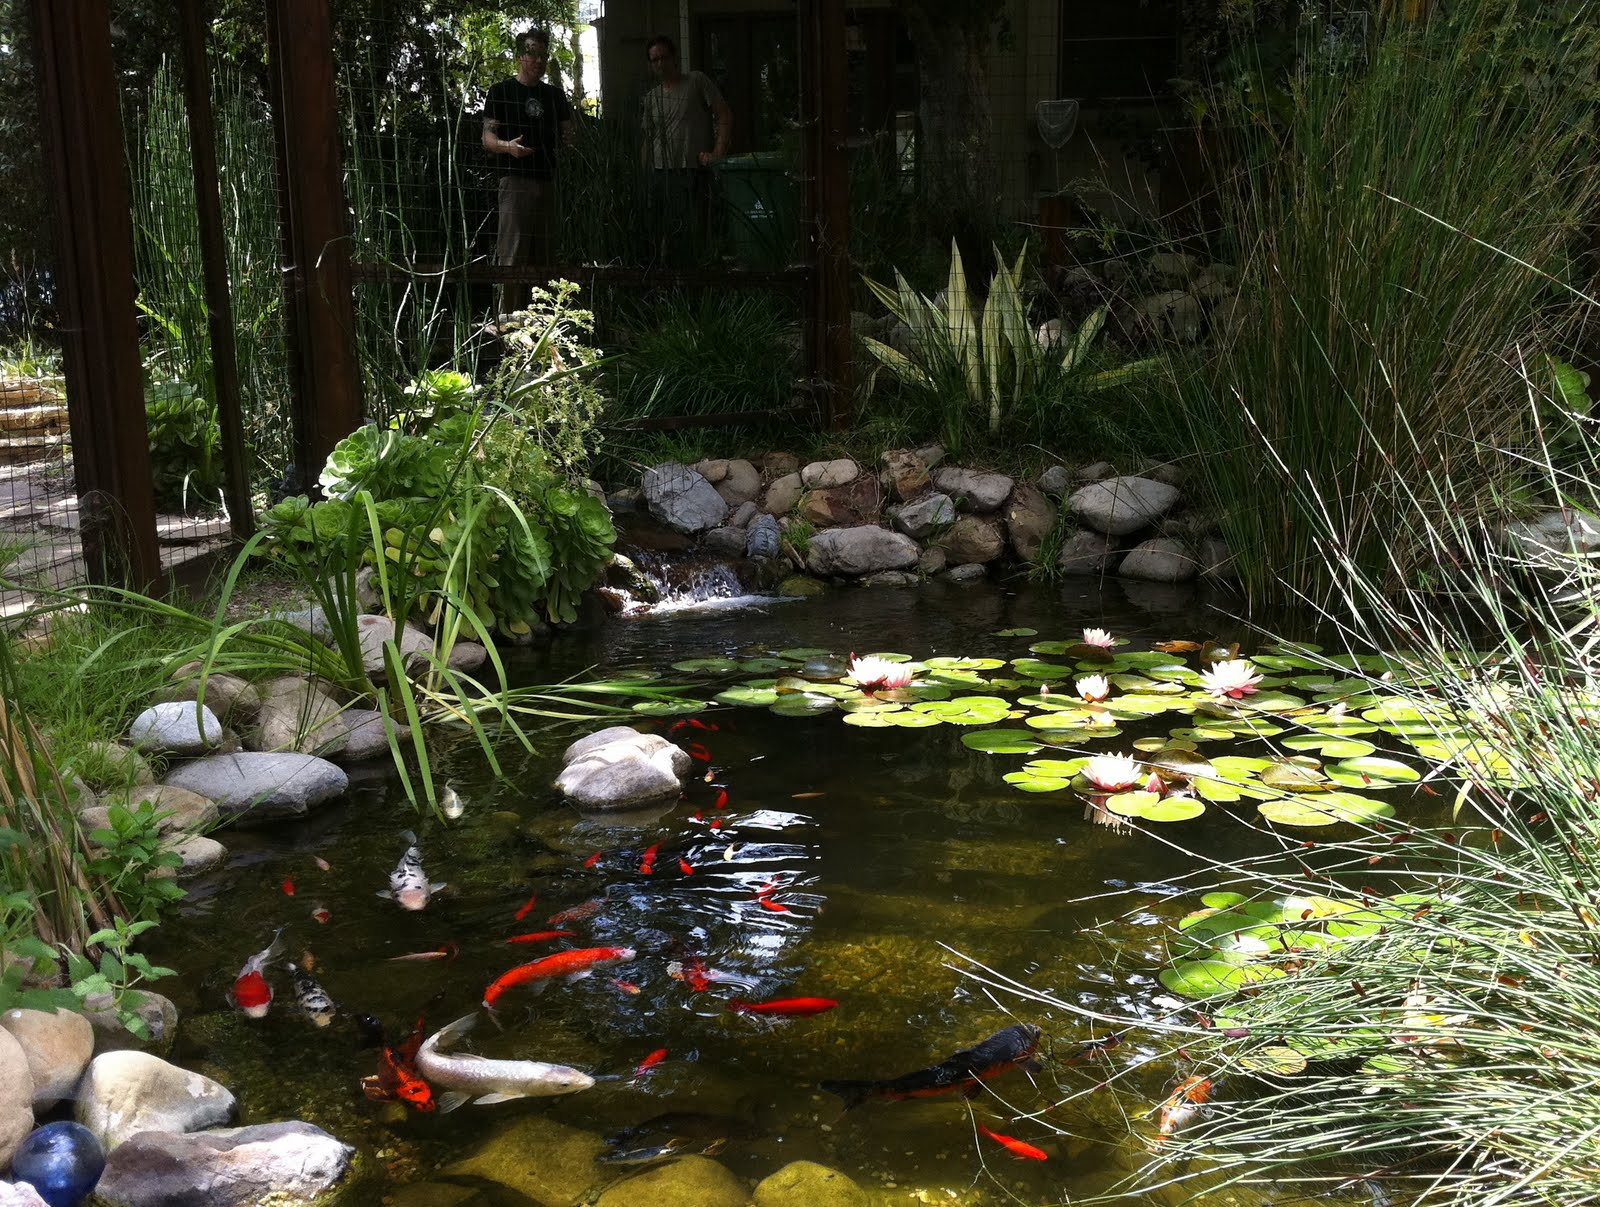 Elgin eco house garden serenity in the midst of the city for Koi pond garden